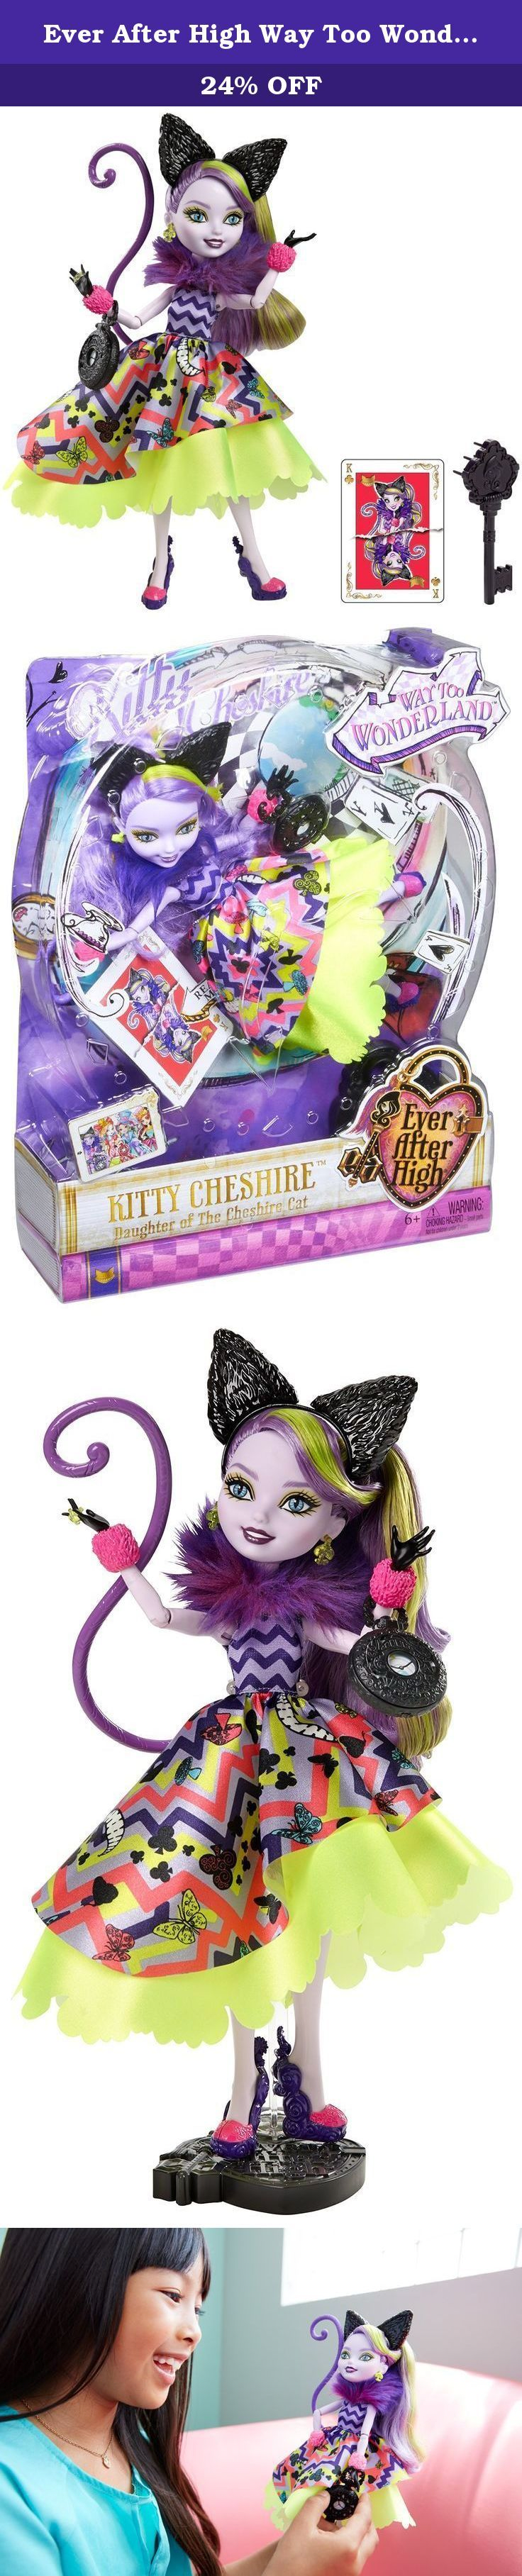 "Ever After High Way Too Wonderland Kitty Chesire Doll. Shut the storybooks you thought you knew because at Ever After High, you can Choose Your Own Ever After! For these teenage sons and daughters of the most famous fairytales ever, every day can turn into an epic day. In the epic Netflix Original Series, ""Way Too Wonderland,"" Raven Queen, daughter of the Evil Queen, tries to magically reverse her mother's curse on Wonderland and accidentally transports herself and her friends to…"